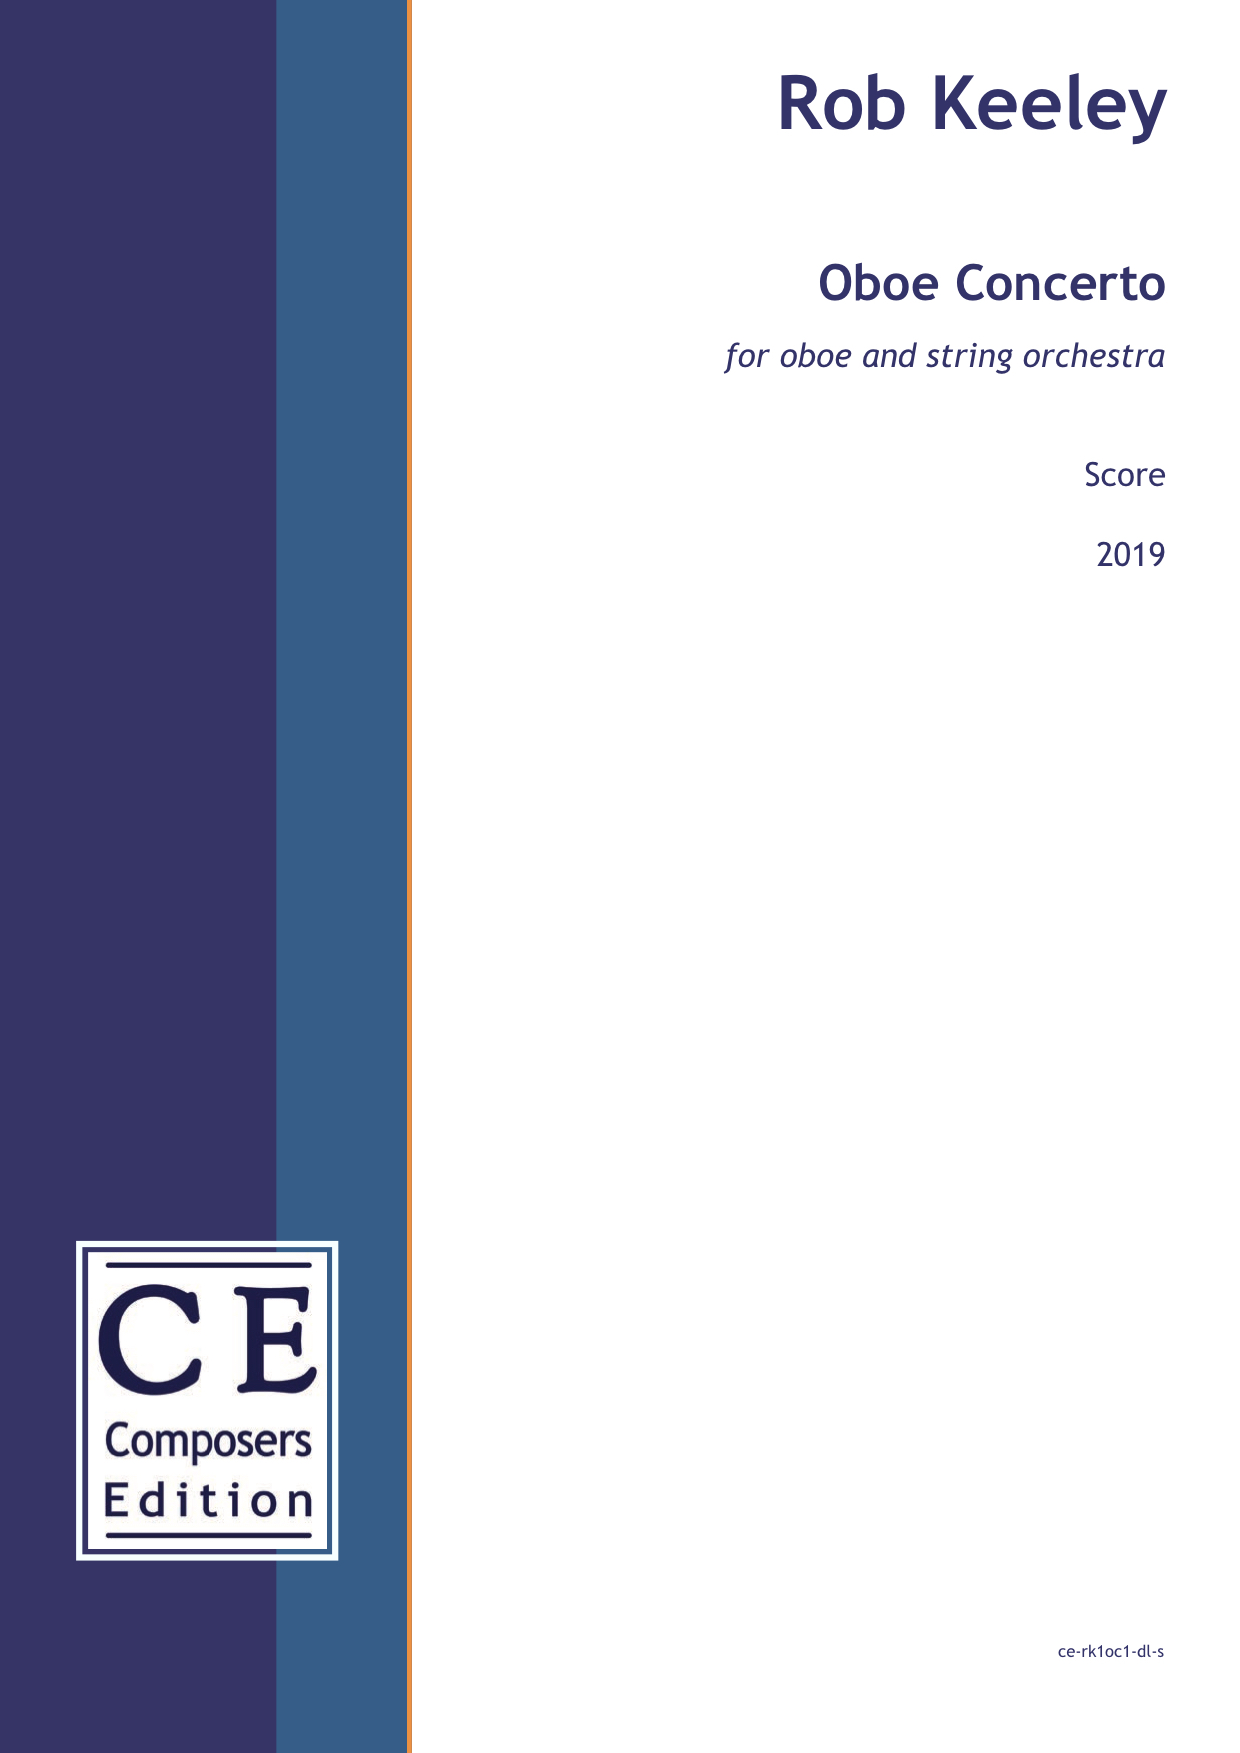 Rob Keeley: Oboe Concerto for oboe and string orchestra